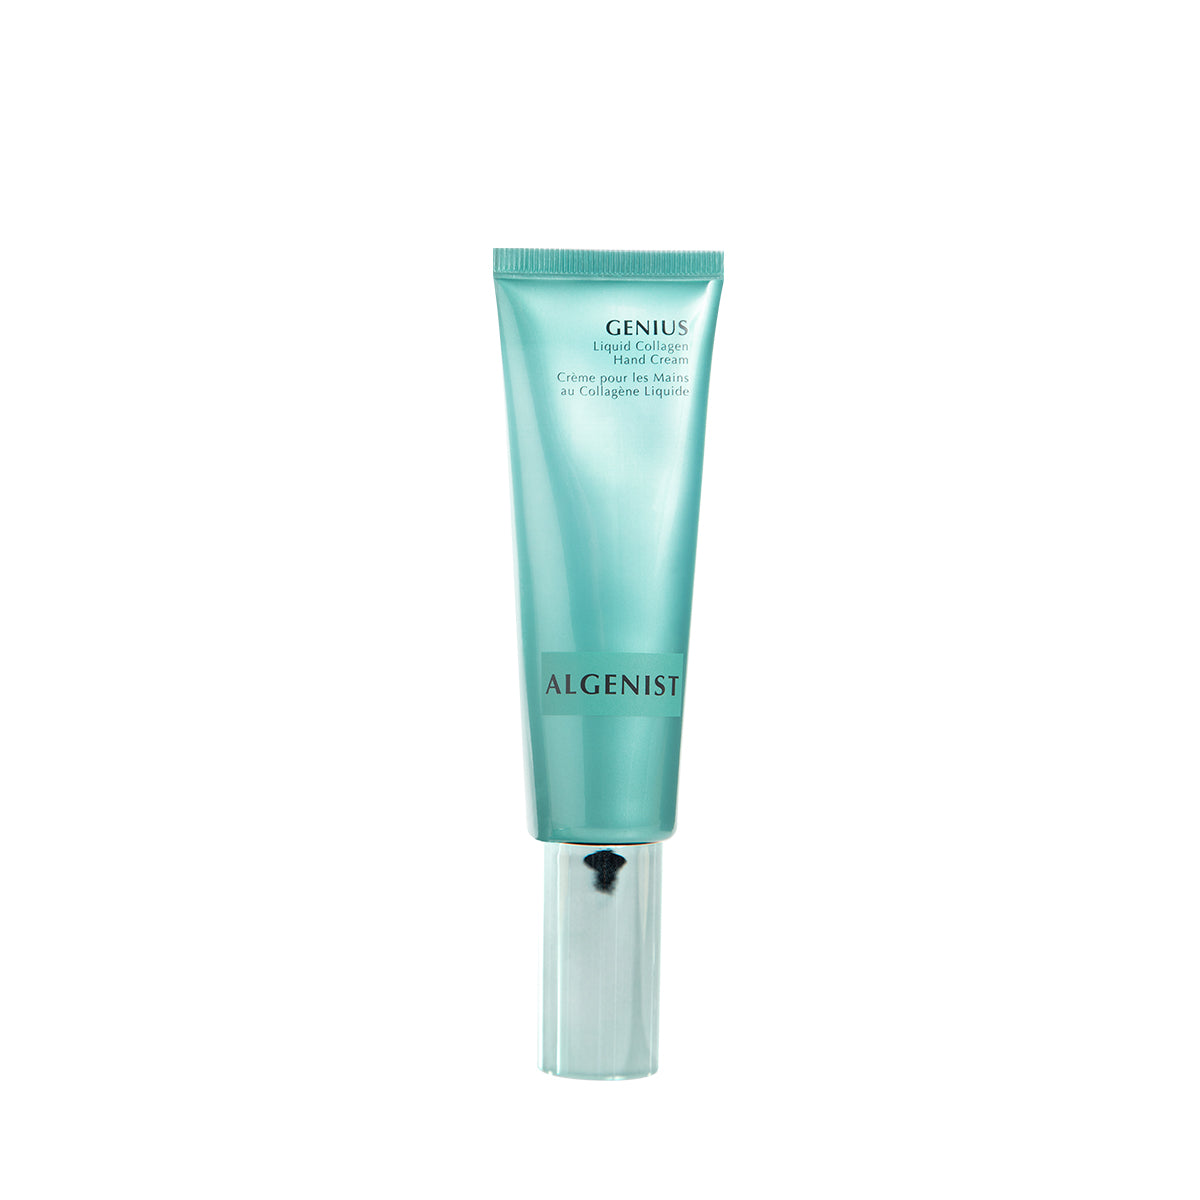 Algenist geniuscollagenhandcream 2